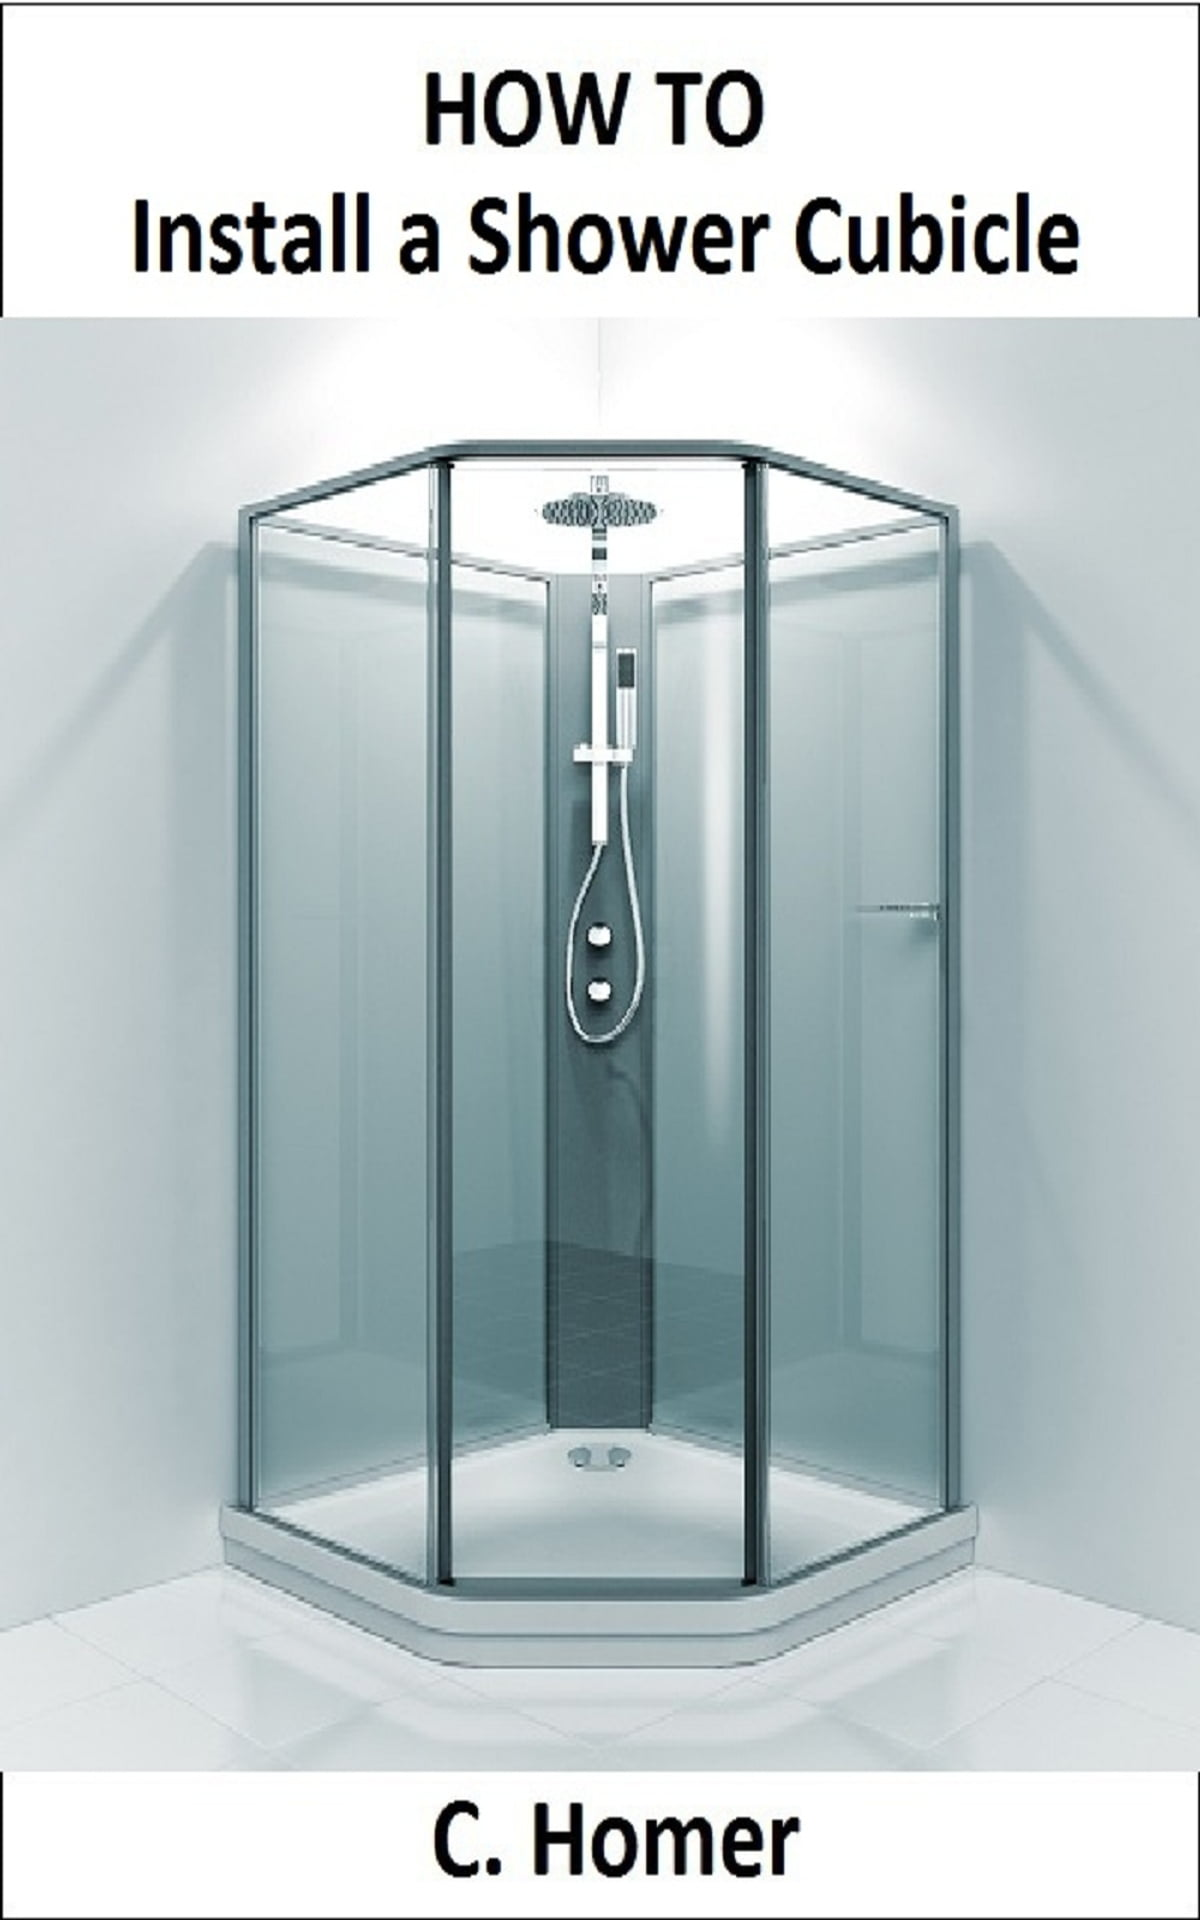 How to install a shower cubicle eBook by C. Homer - 1230000185894 ...